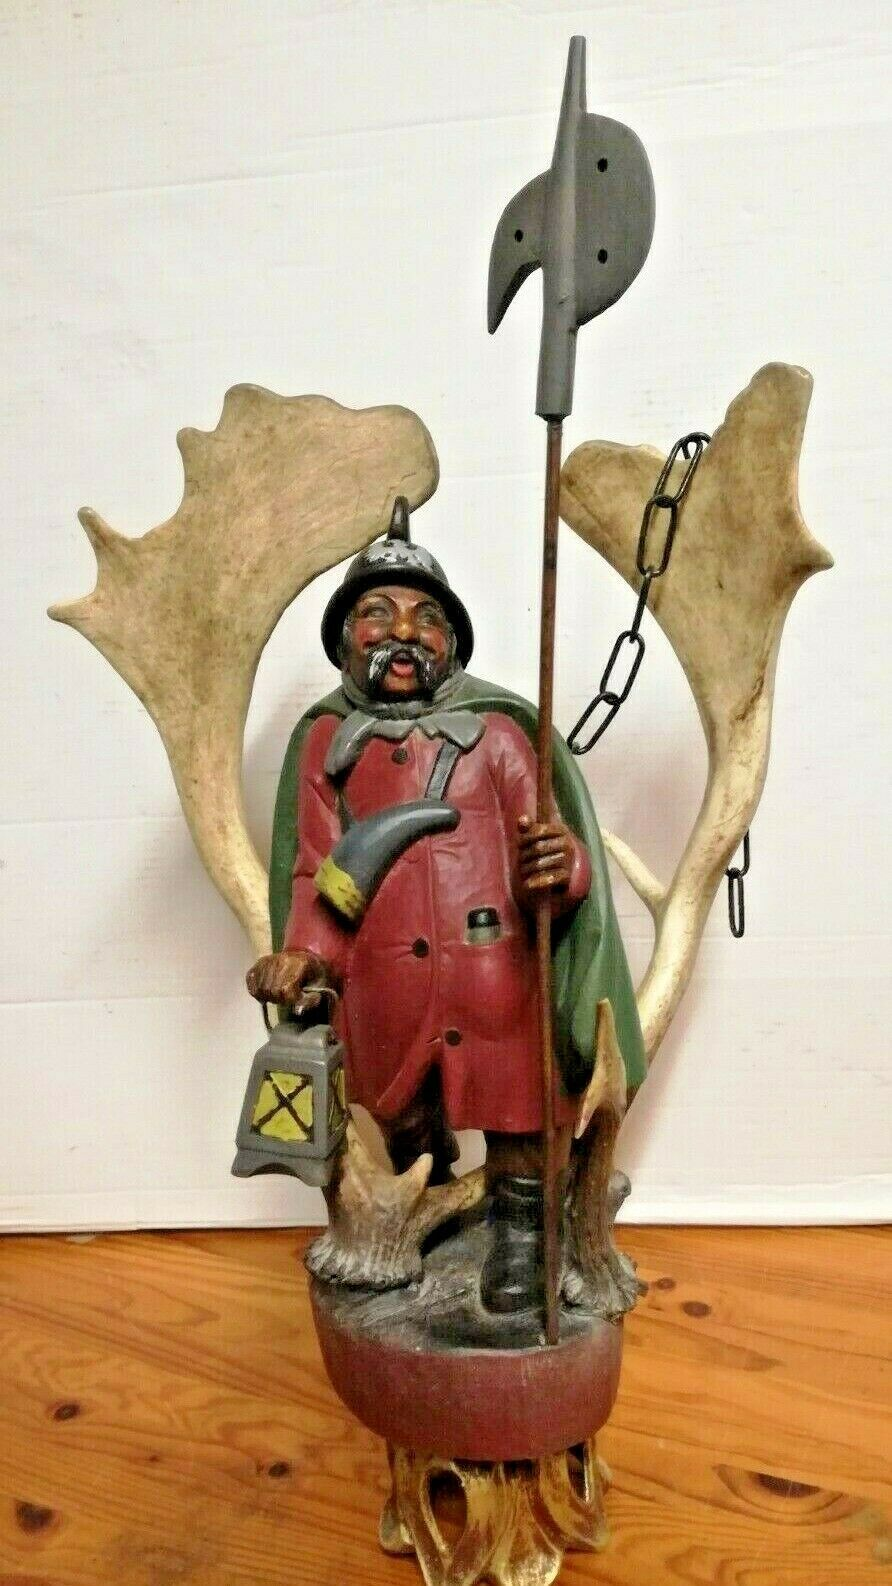 Rare Antique Germany 1930 black forest ceiling lamp wood carved Lüstermännchen